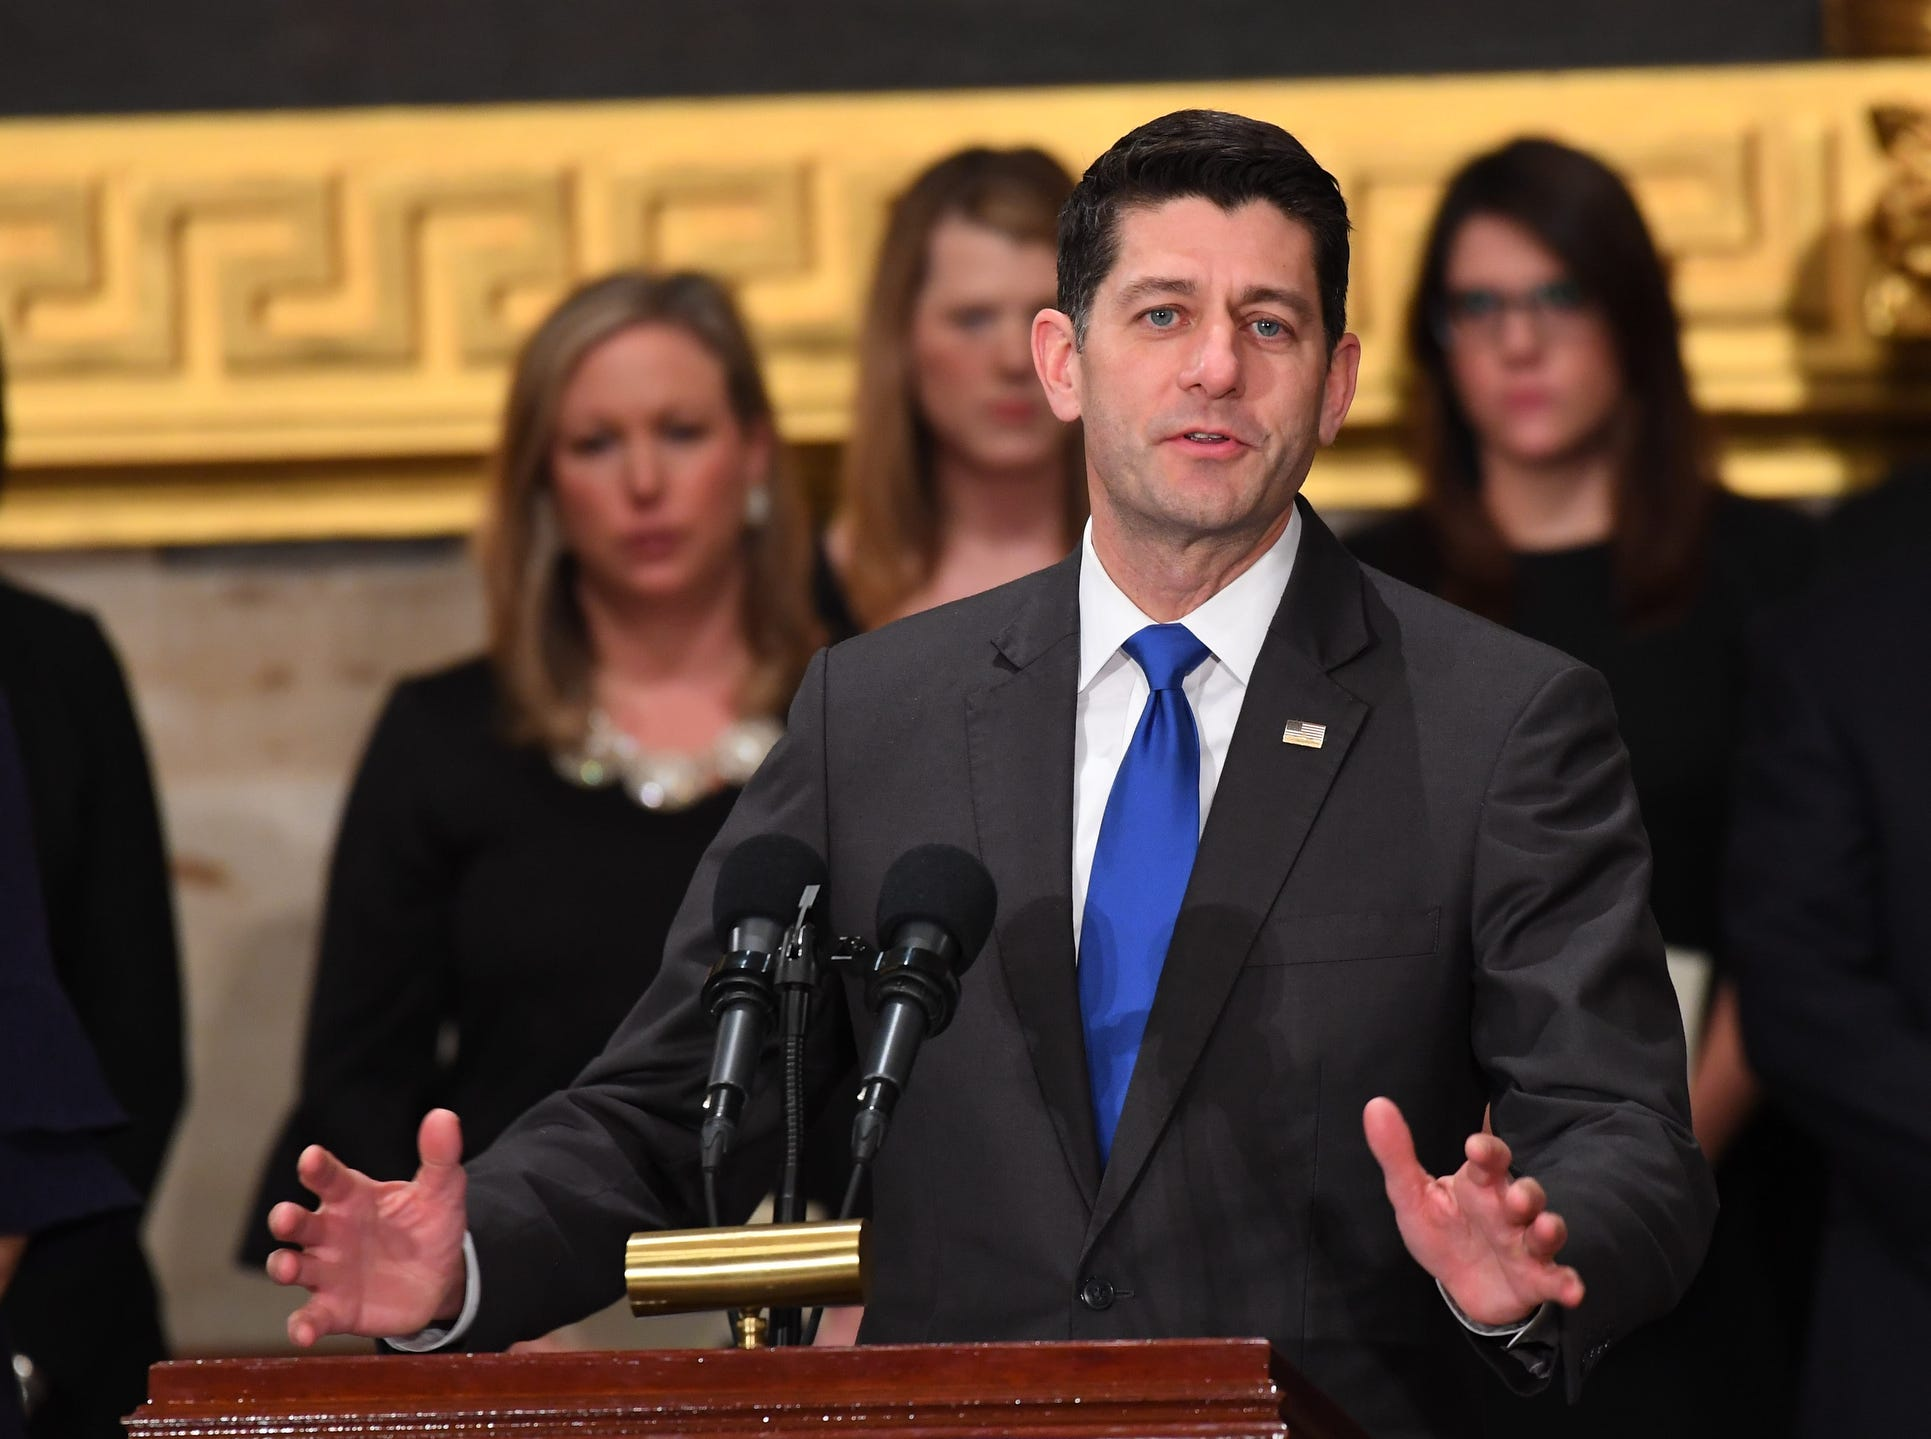 Speaker of the House Rep. Paul Ryan (R-WI) speaks at the ceremony honoring former President George H.W. Bush  at the U.S. Capitol Rotunda.